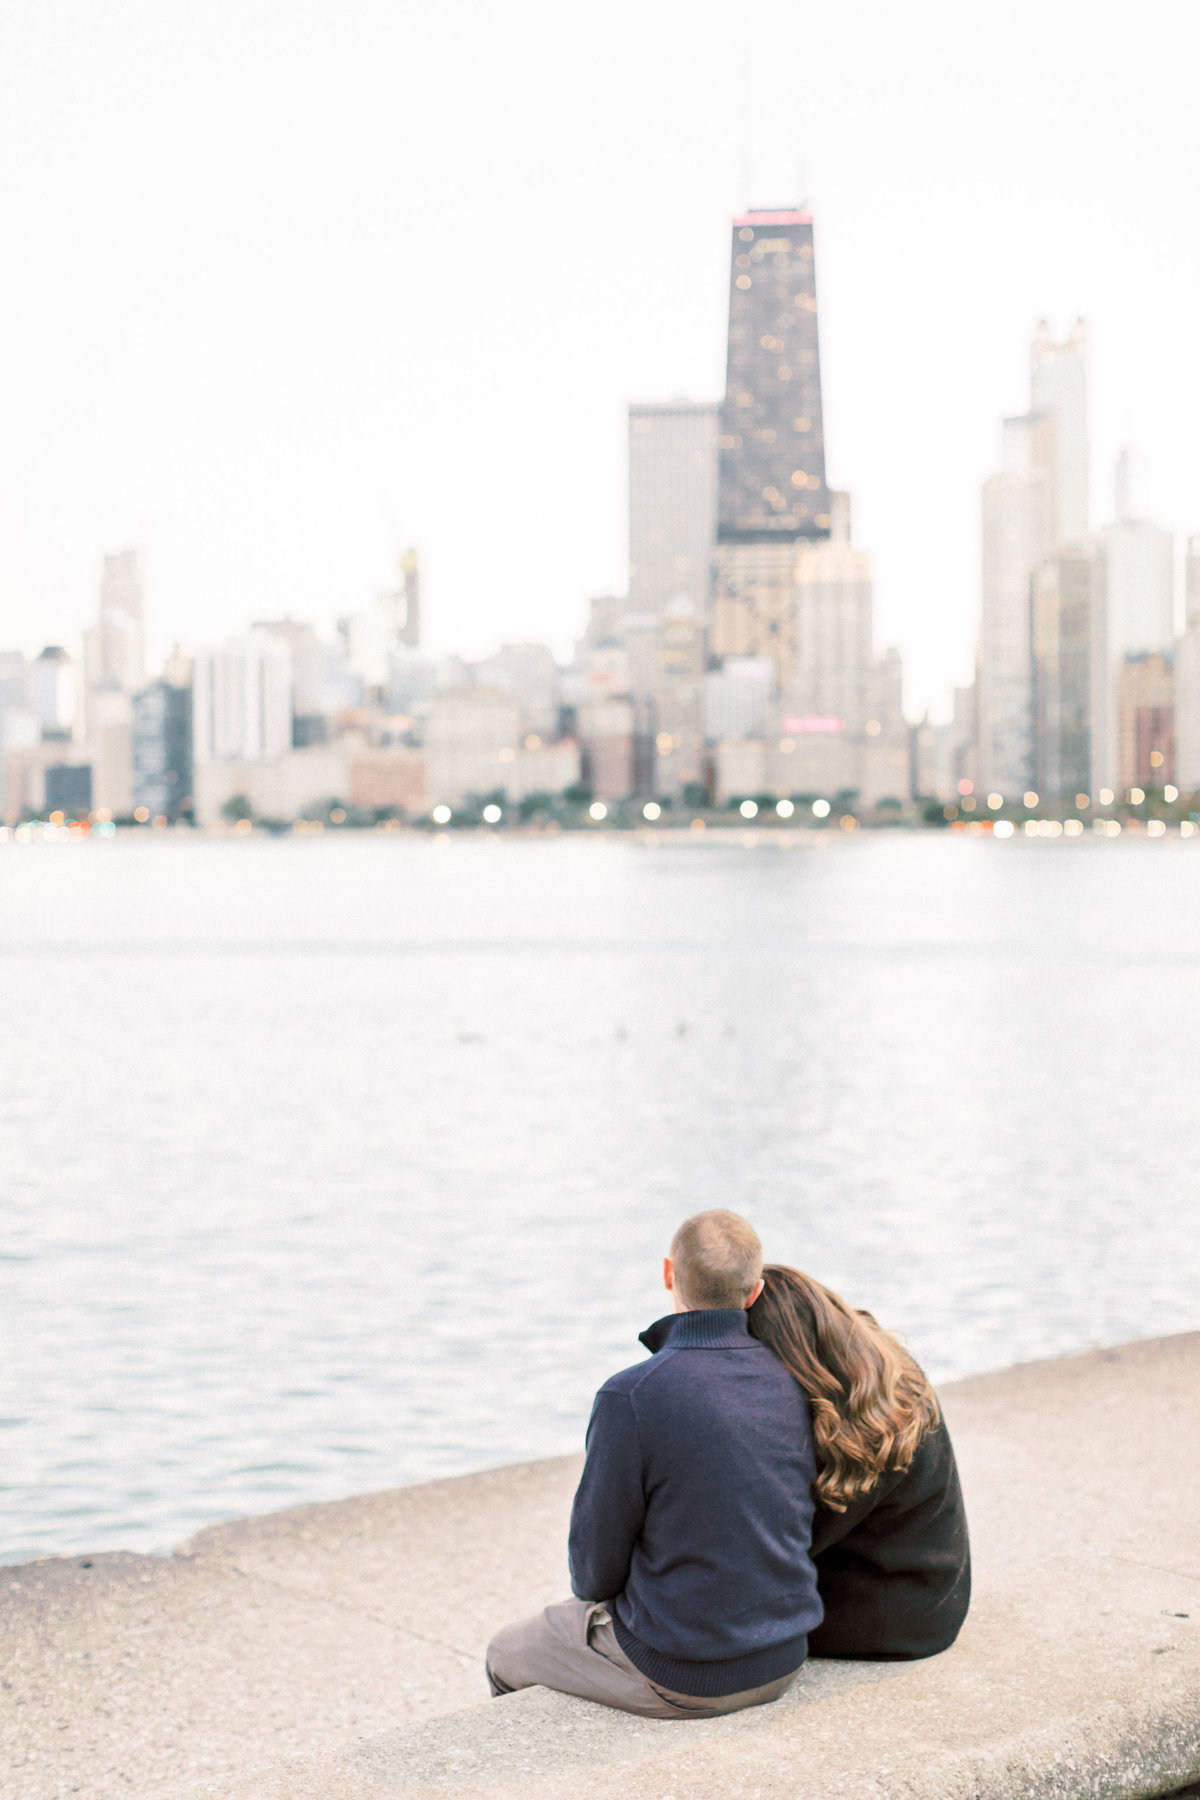 TiffaneyChildsPhotography-ChicagoWeddingPhotographer-Nicole+Christopher-WashingtonSquare&NorthAvenueEngagementSession-164